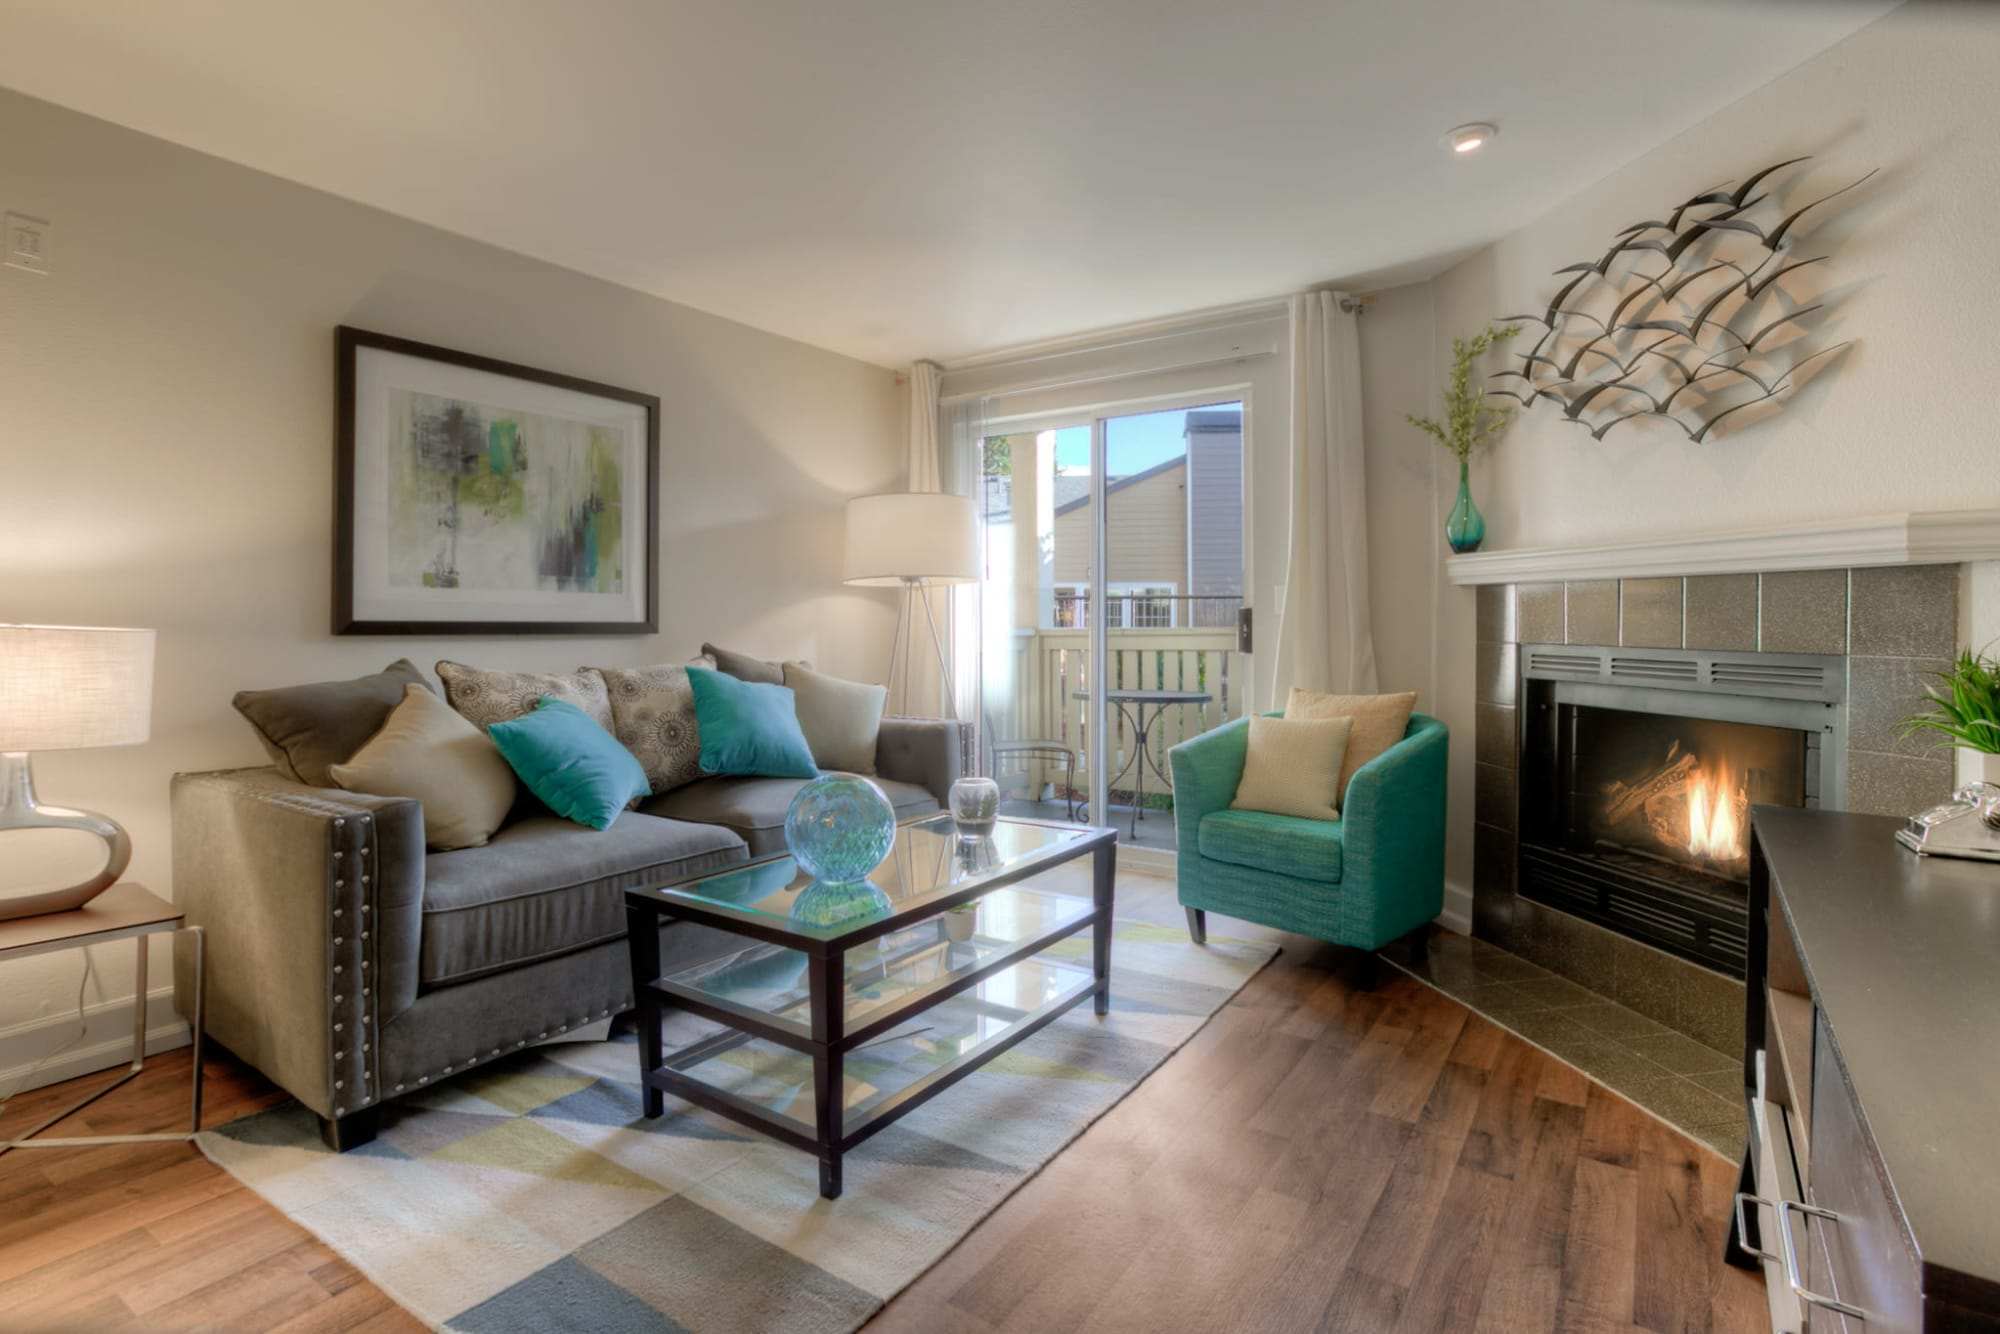 Living room with fireplace - model home at Newport Crossing Apartments